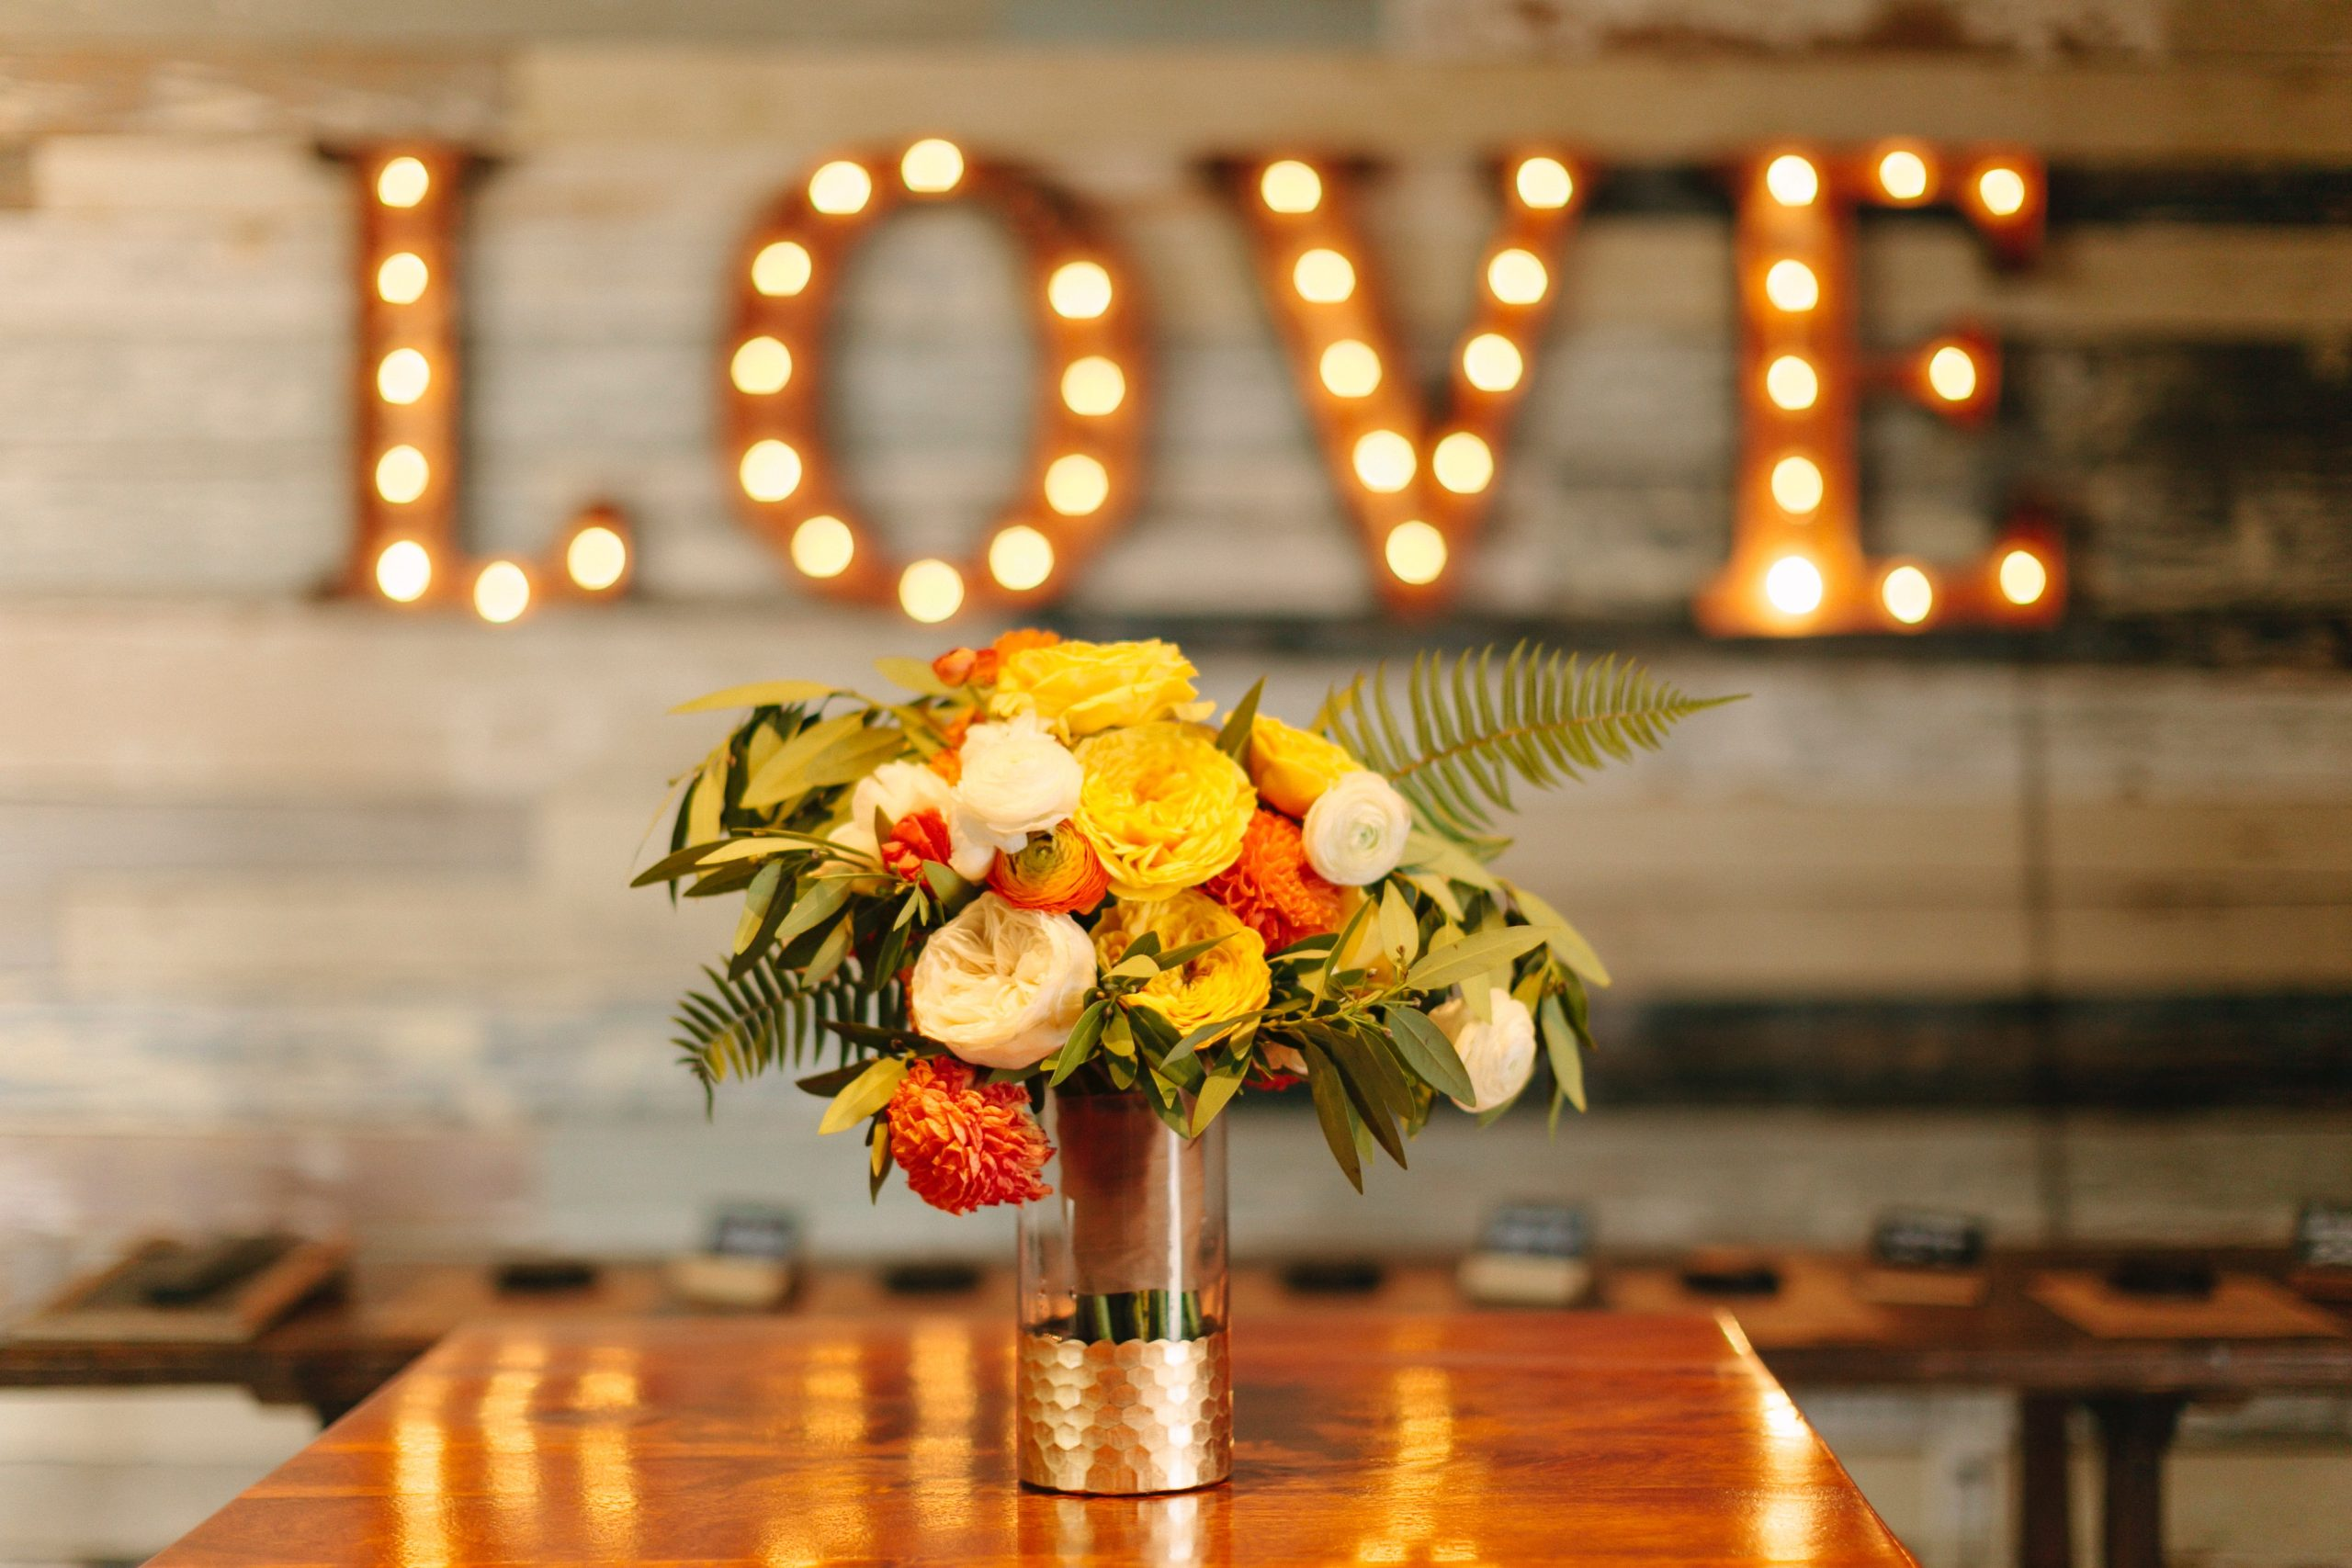 Rustic chic wedding decorations are this year's biggest trend! Not only do they look beautiful, but this rustic chic look means that you can make a majority of the items on this list without a problem. You can make your centerpieces as elaborate or simple as you want!